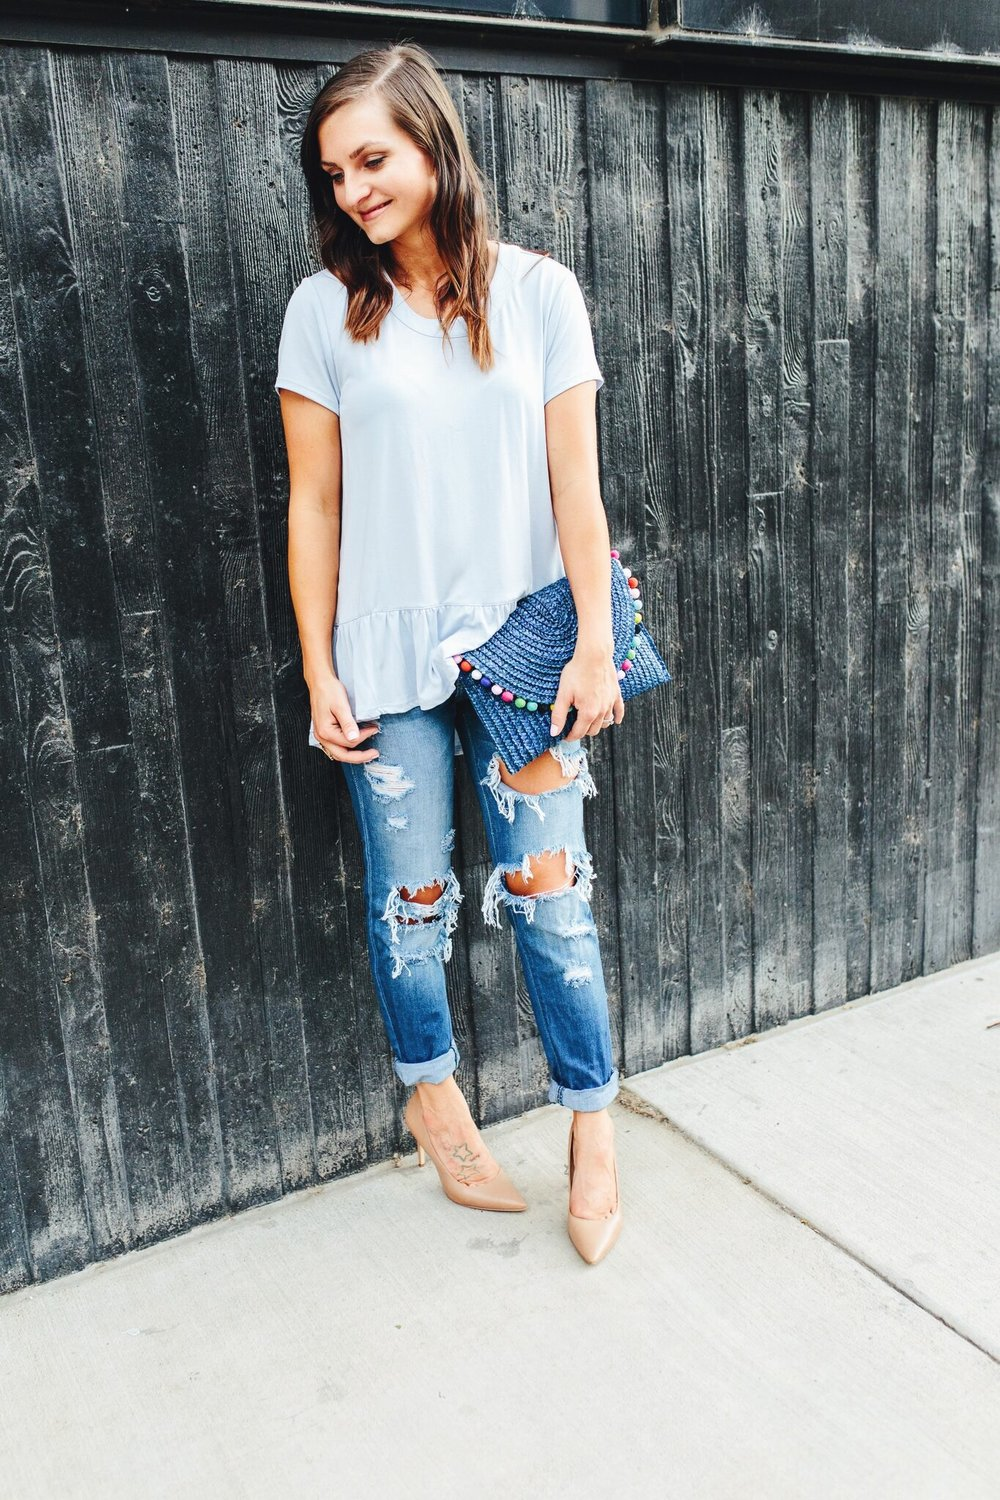 "<img src =""how-to-wear-boyfriend-jeans.jpg"" alt = ""Fashion-blogger-teddybearsandlipstick-showing-how-to-style-boyfriend-jeans-with-classic-sam-edeman-hazel-pumps-a-colorful-pompom-clutch-and-blue-peplum-top"">"